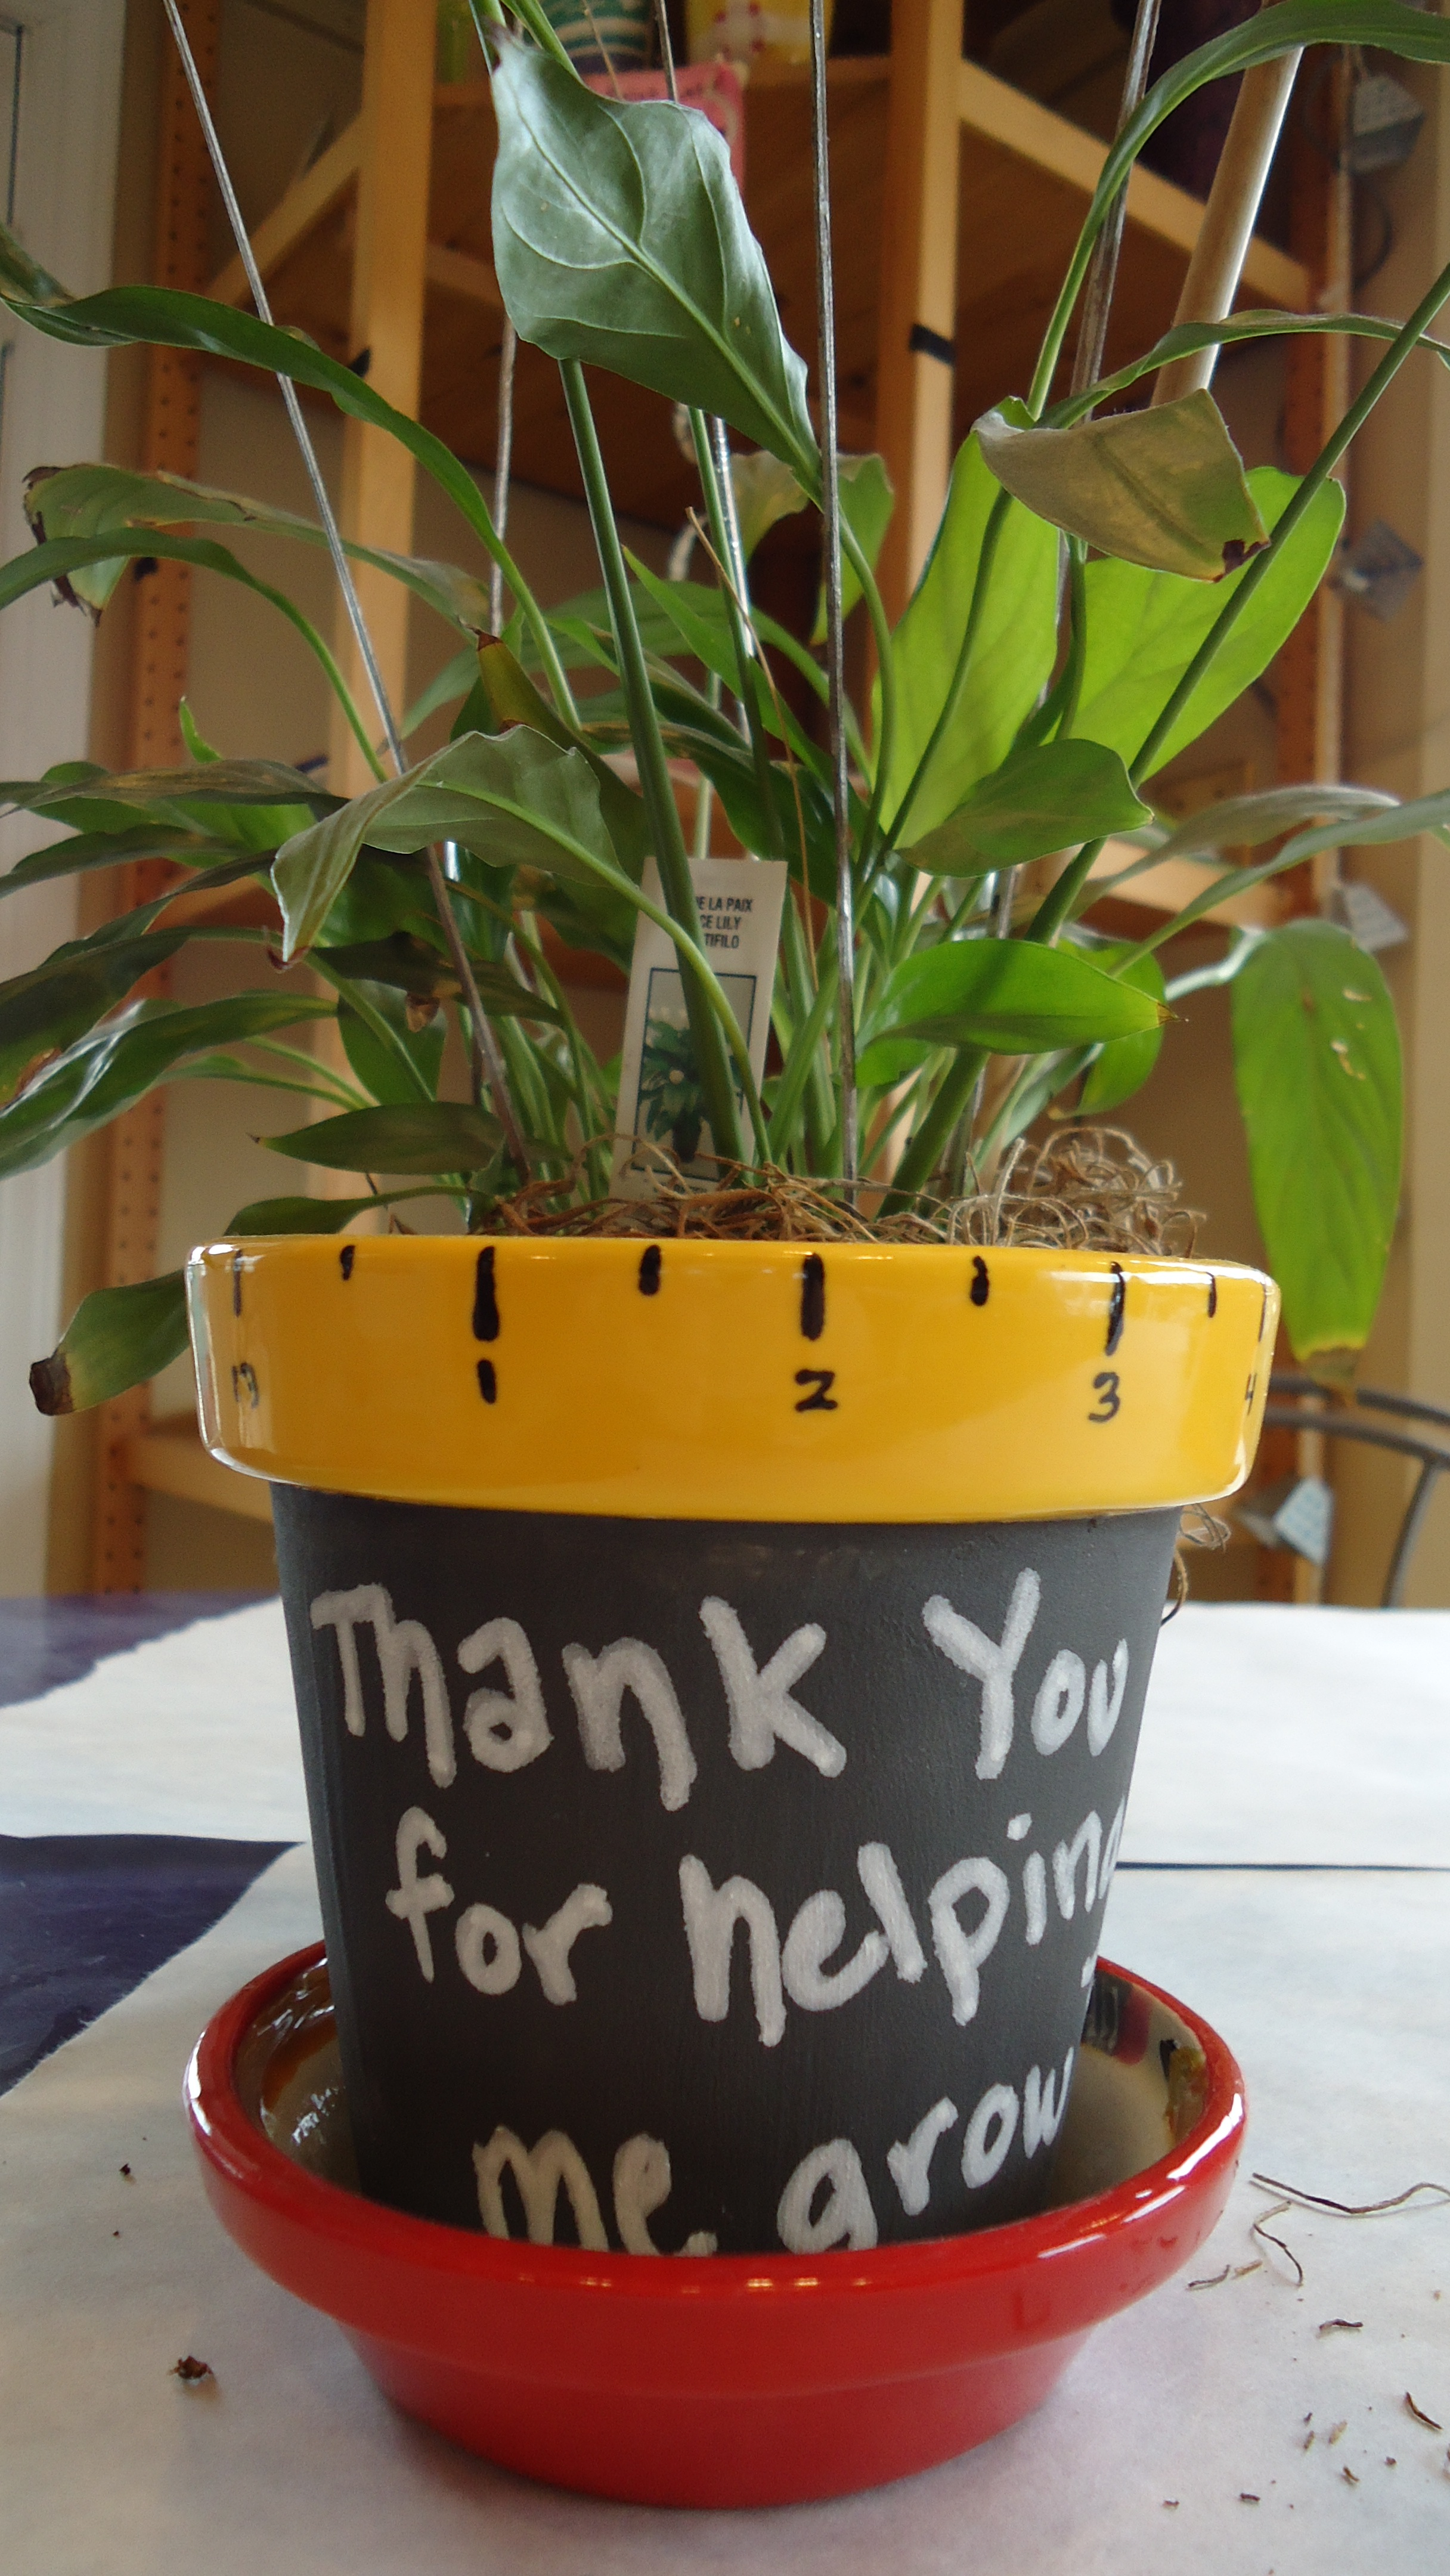 Thanks For Helping Me Grow Flower Pot All Fired Up